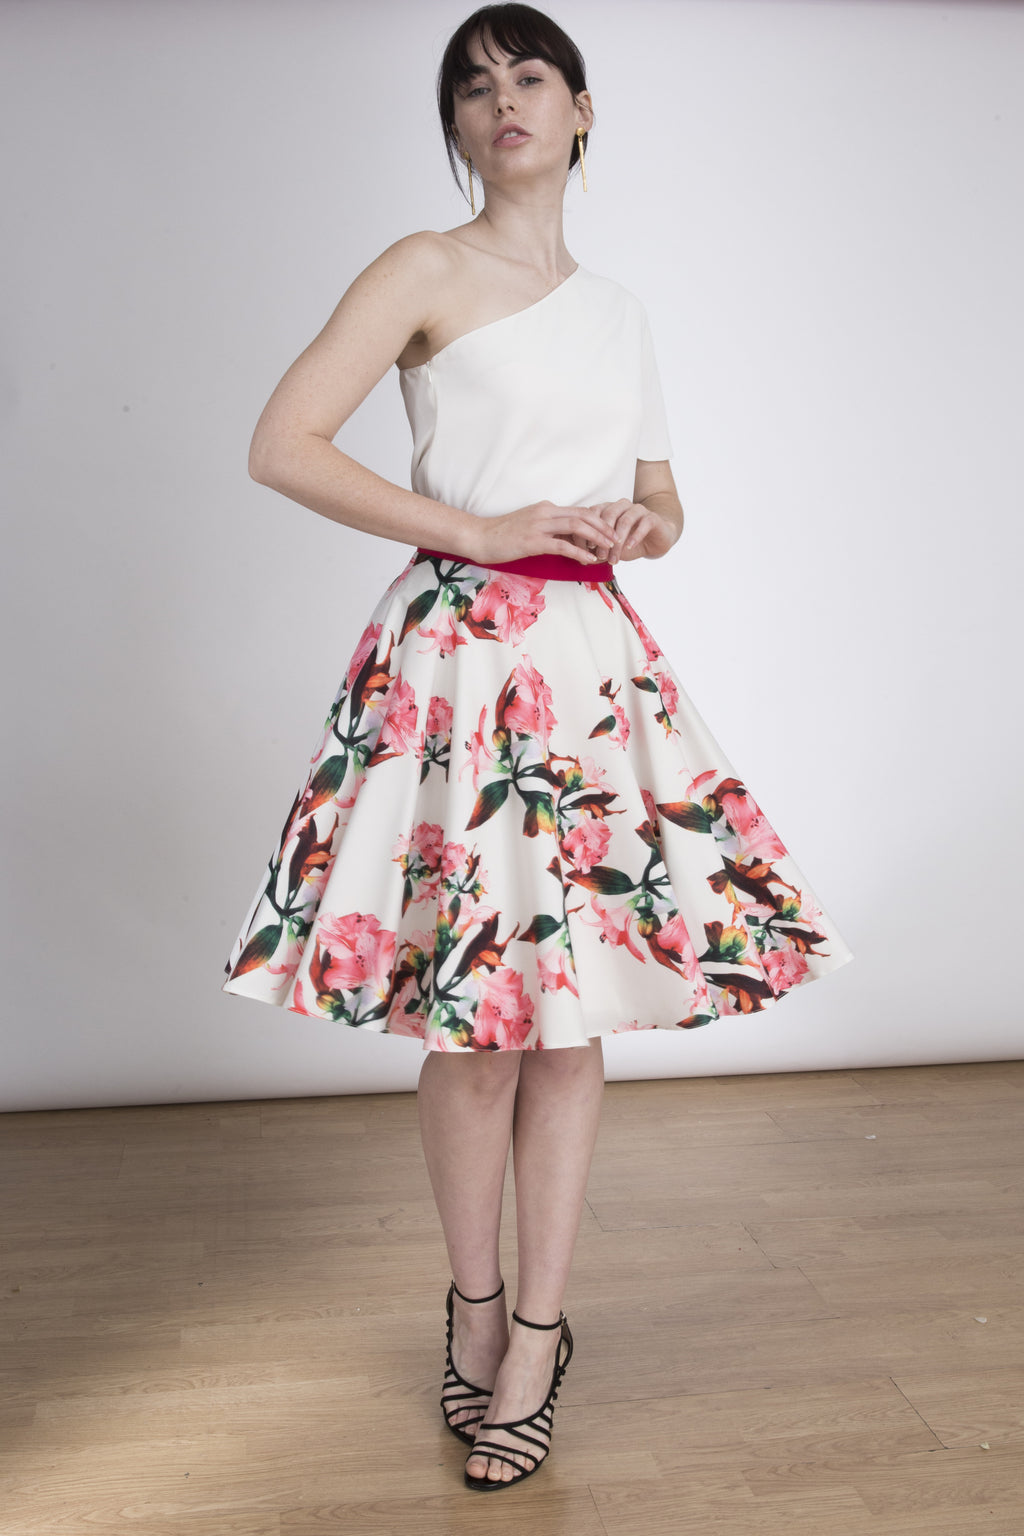 The Kate Floral Skirt - White and Pink floral skirt - knee length. Lauren Lynn London skirt, Lauren Lynn London formal skirt, formal floral skirt, formal floral midi skirt made with crepe. Skirt for special occasions at Lauren Lynn London. Falda para ocasiones especiales. Falda espampada formal, falda de flores para bodas, bautizos o comuniones con vuelo y tonos rosas y blancos. Pink and white floral skirt.